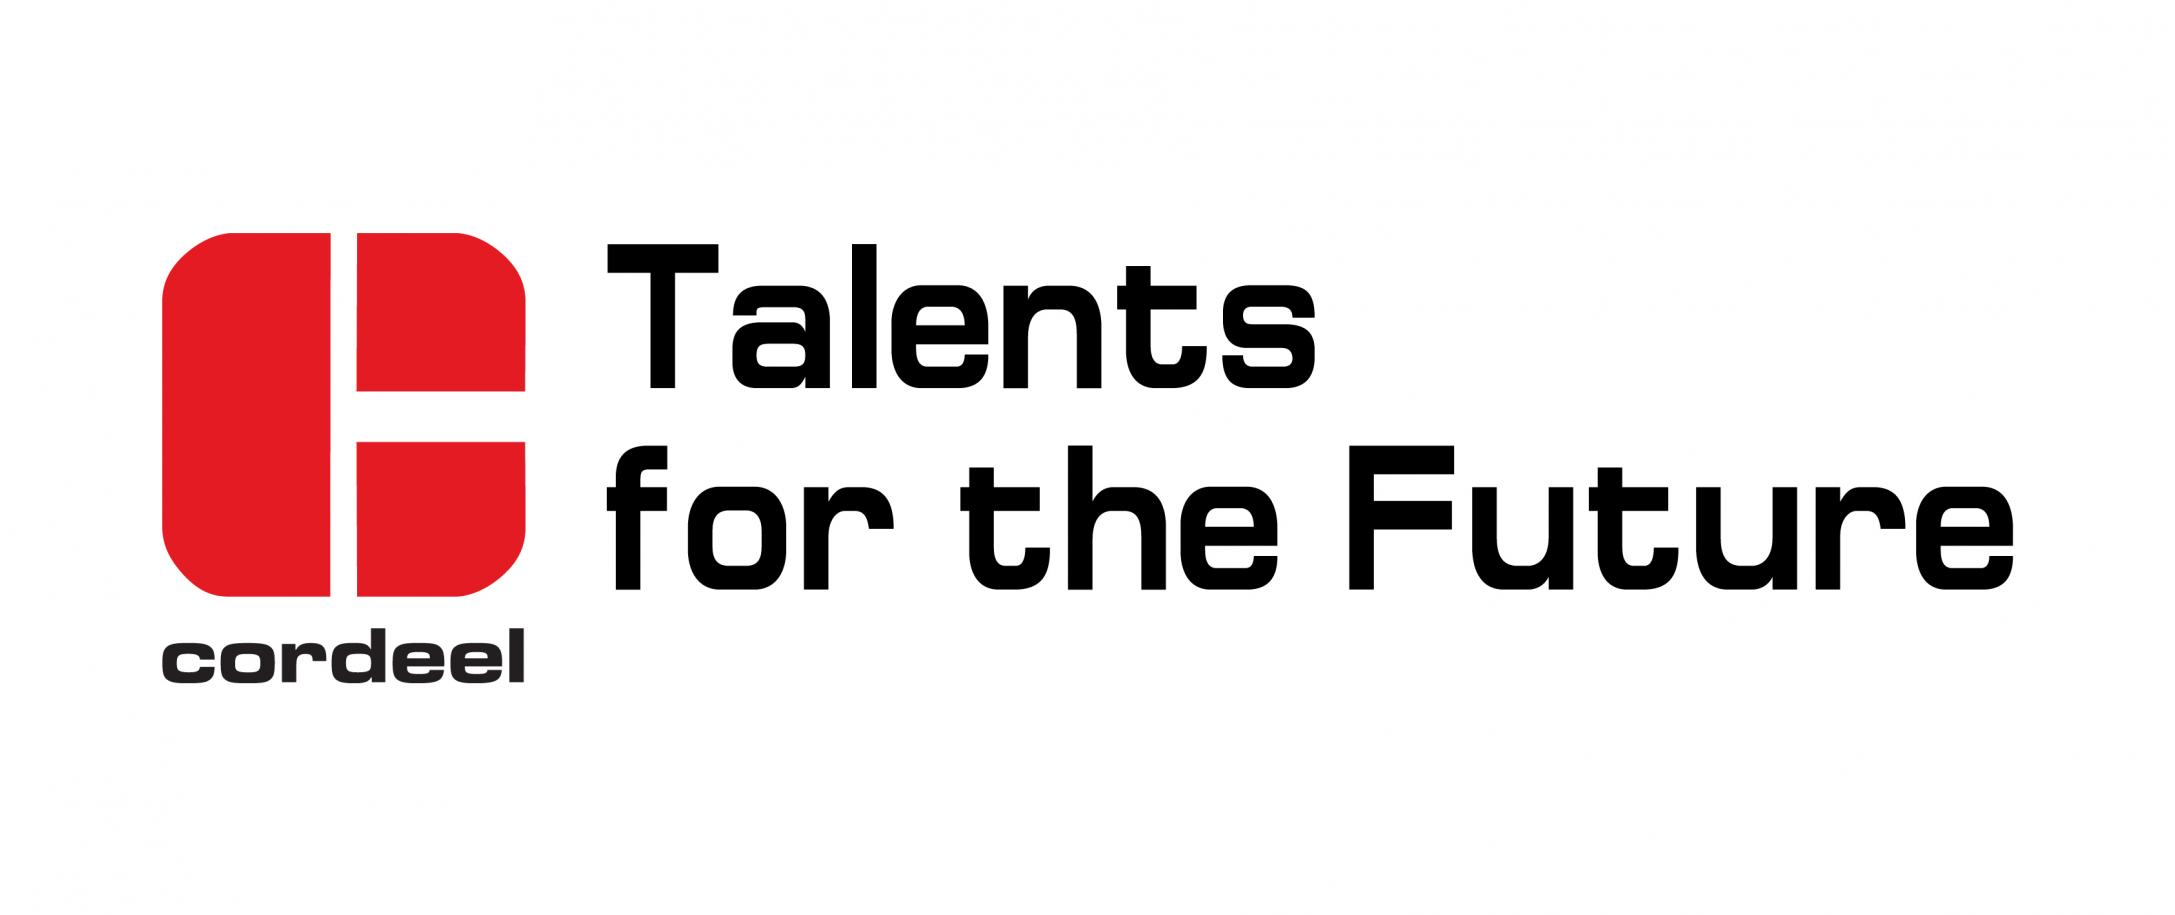 Talents for the future